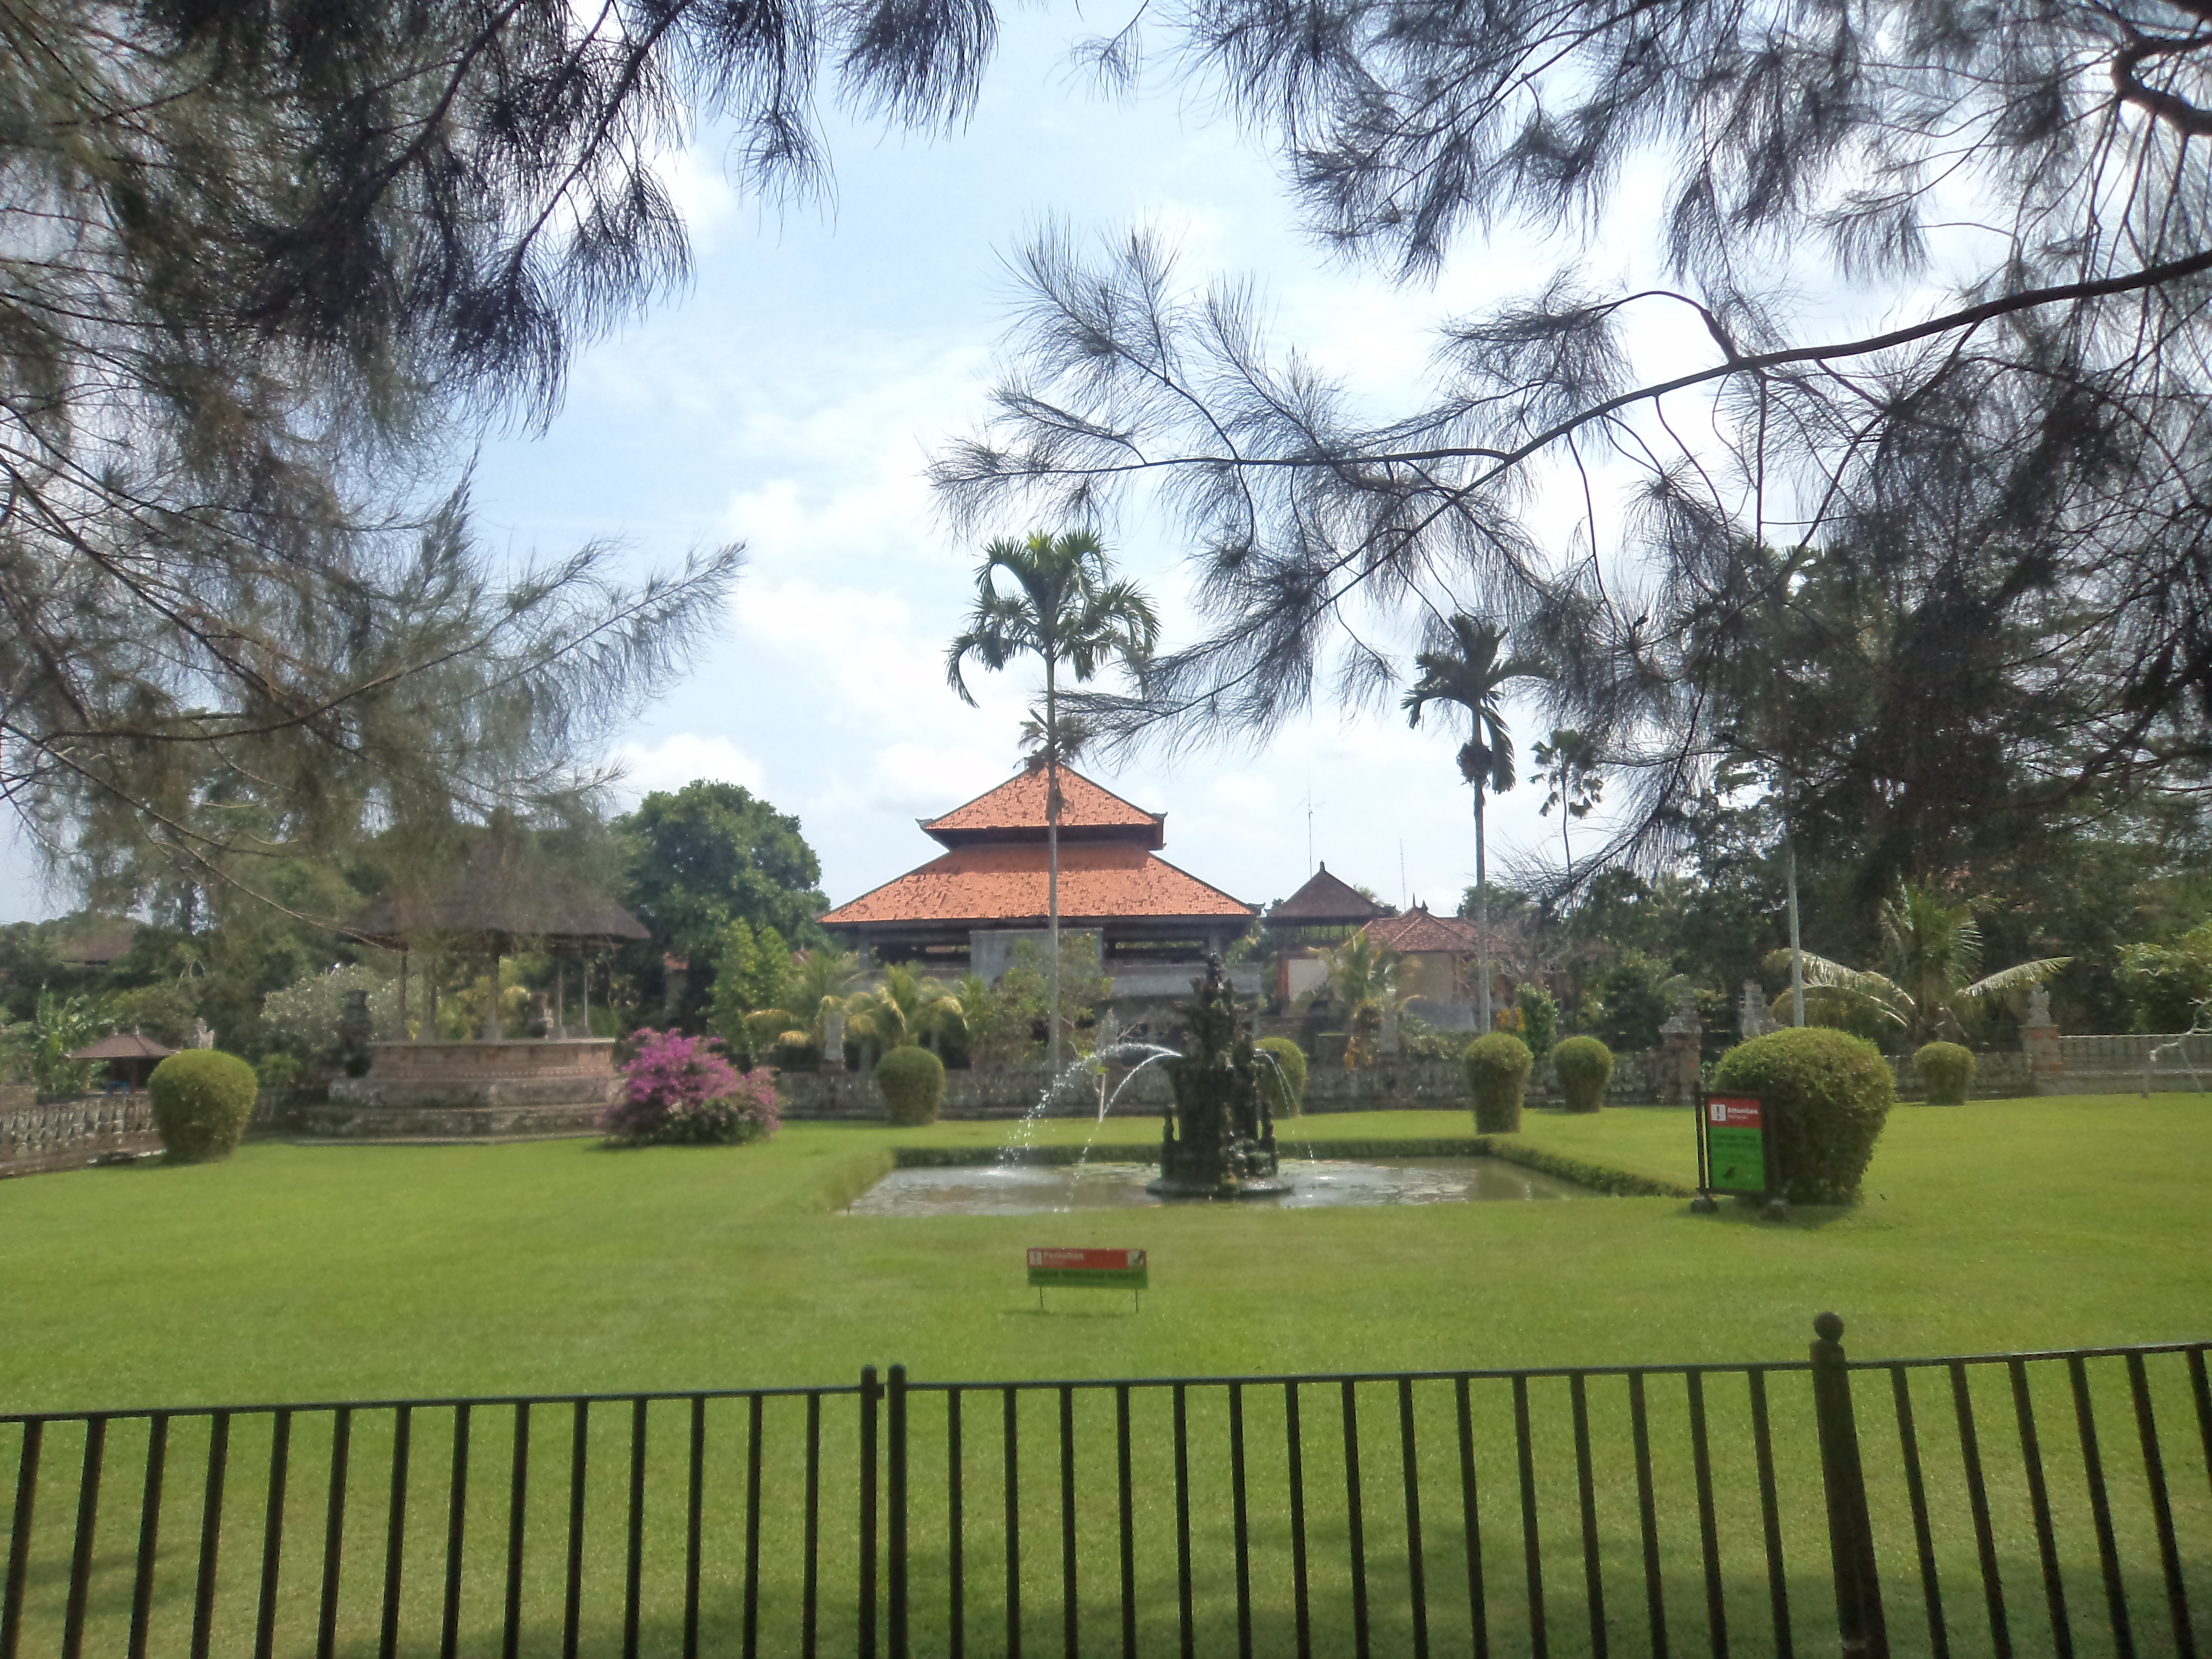 View from outside - Taman Ayun temple, Bali